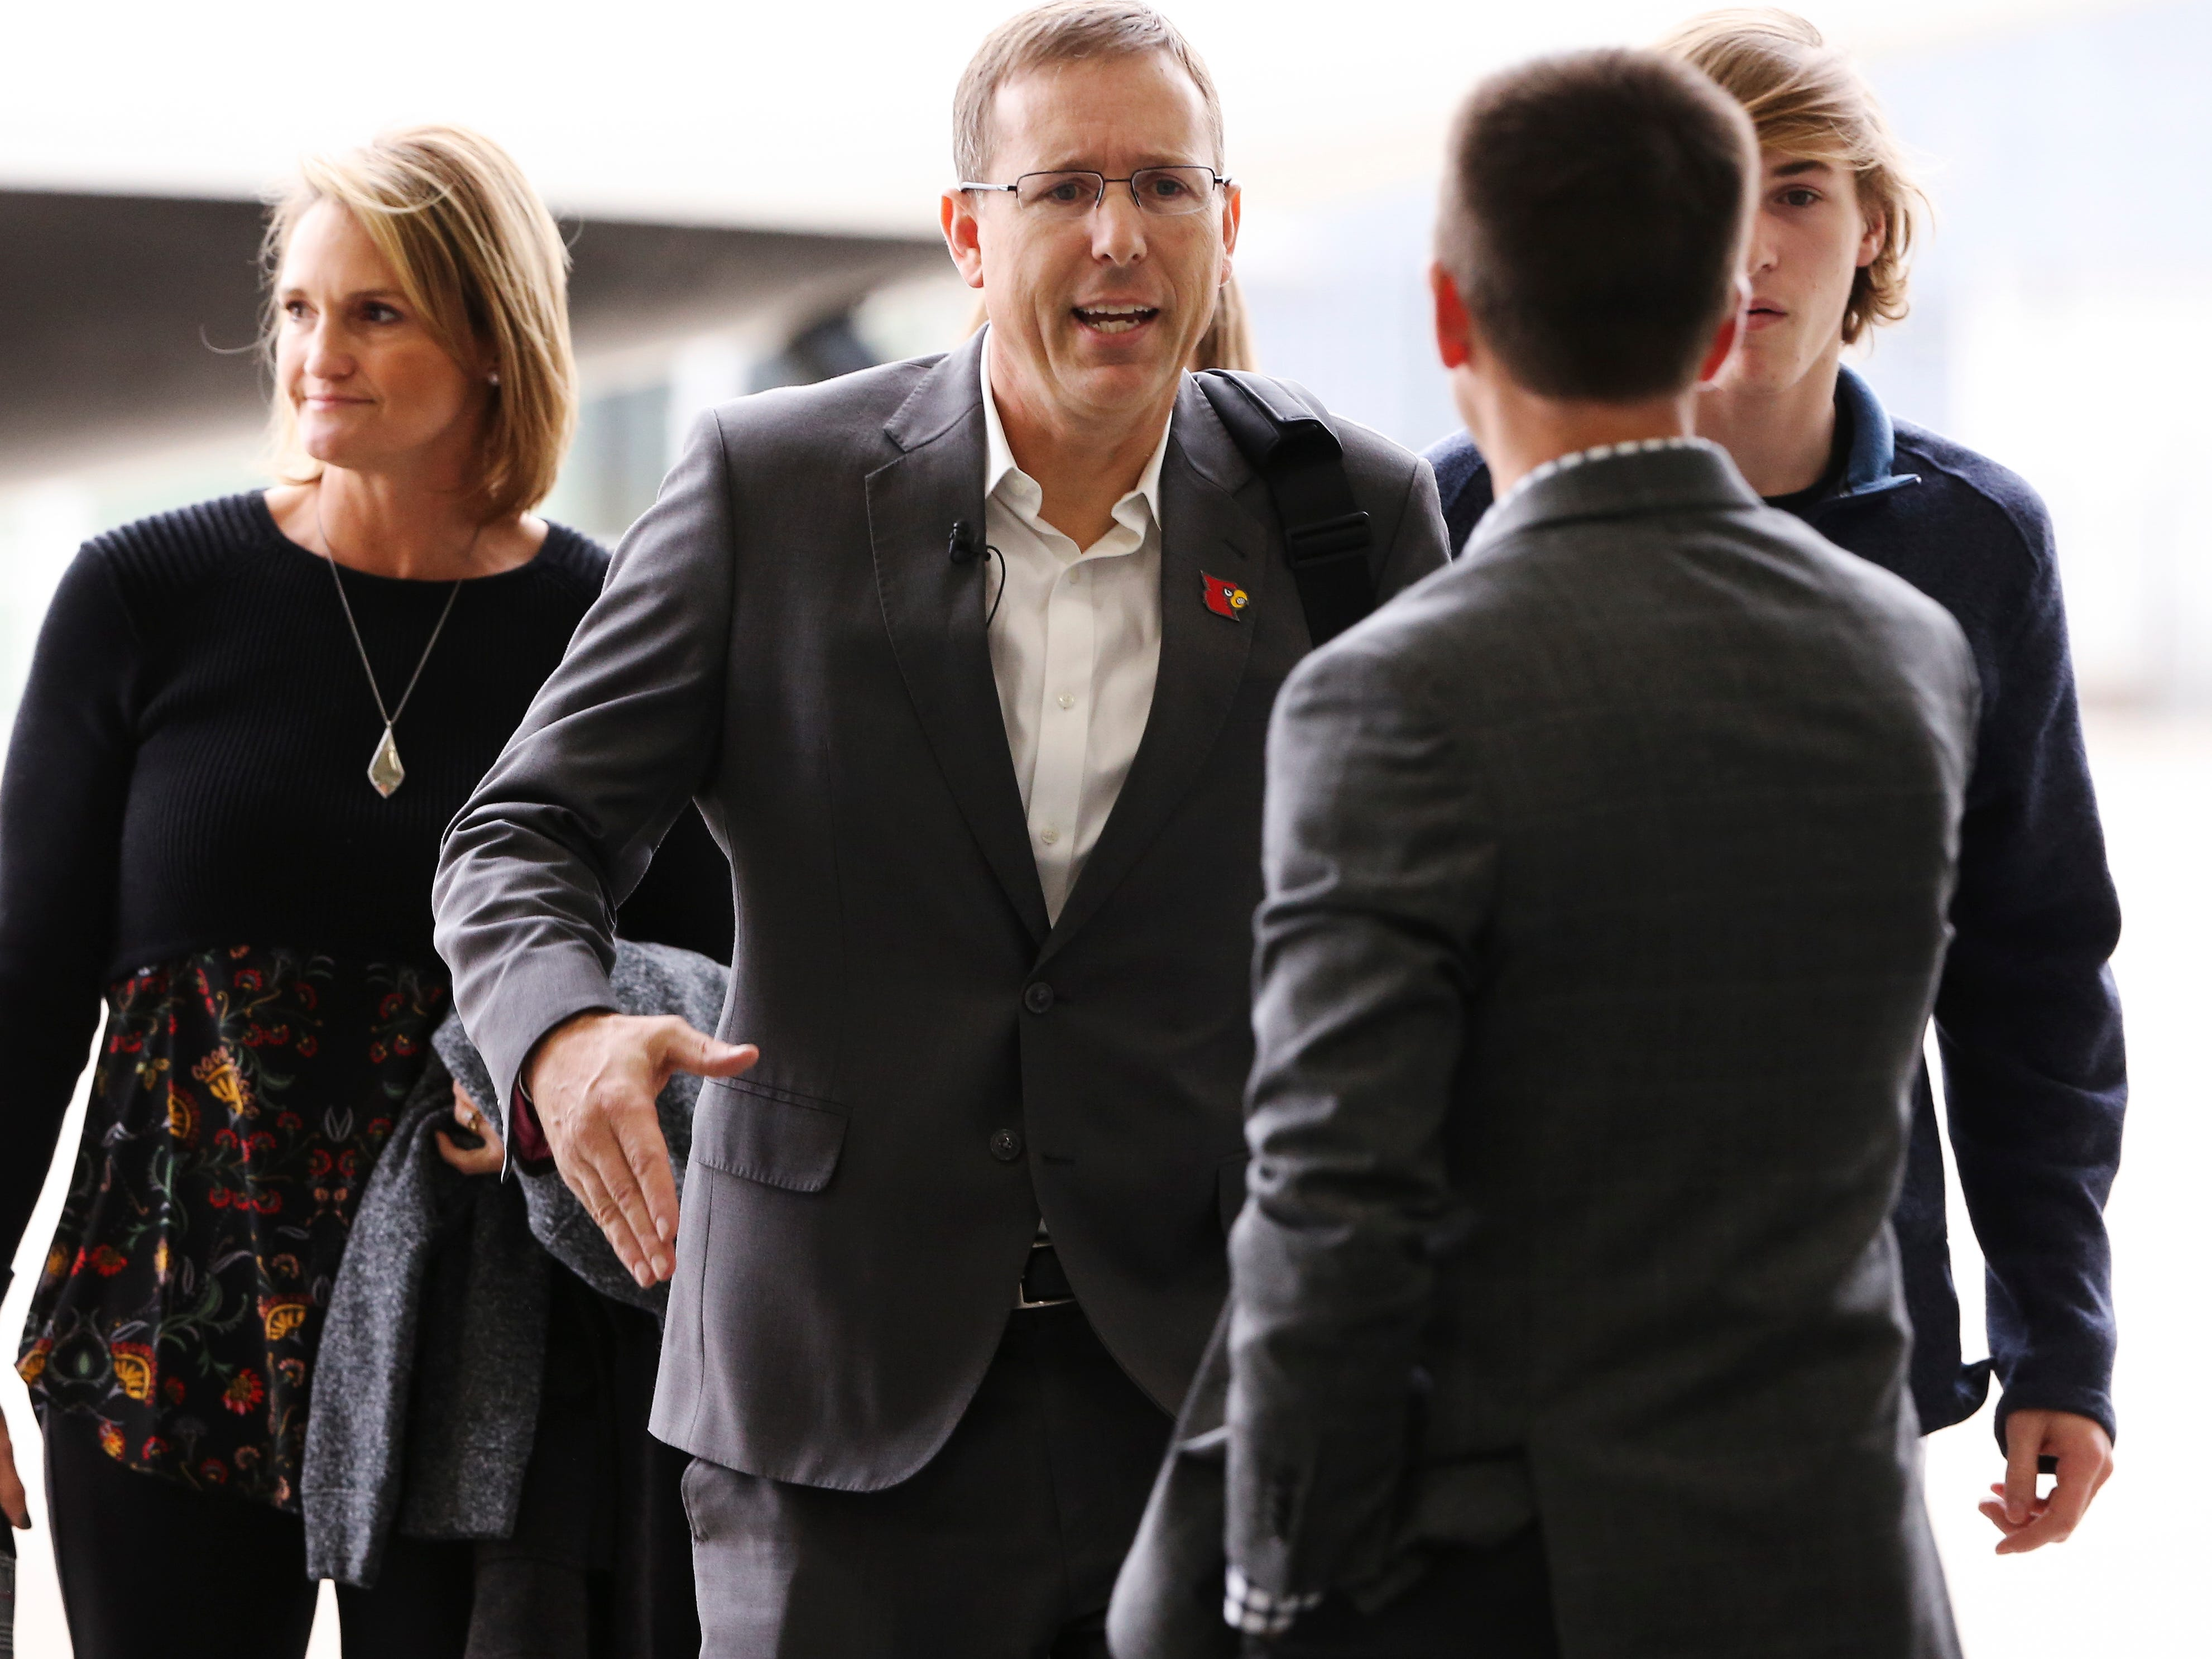 Appalachian State head football coach Scott Satterfield, center, greets people after exiting a private plane with his family in Louisville where he expects to be named the new head football coach at U of L.  